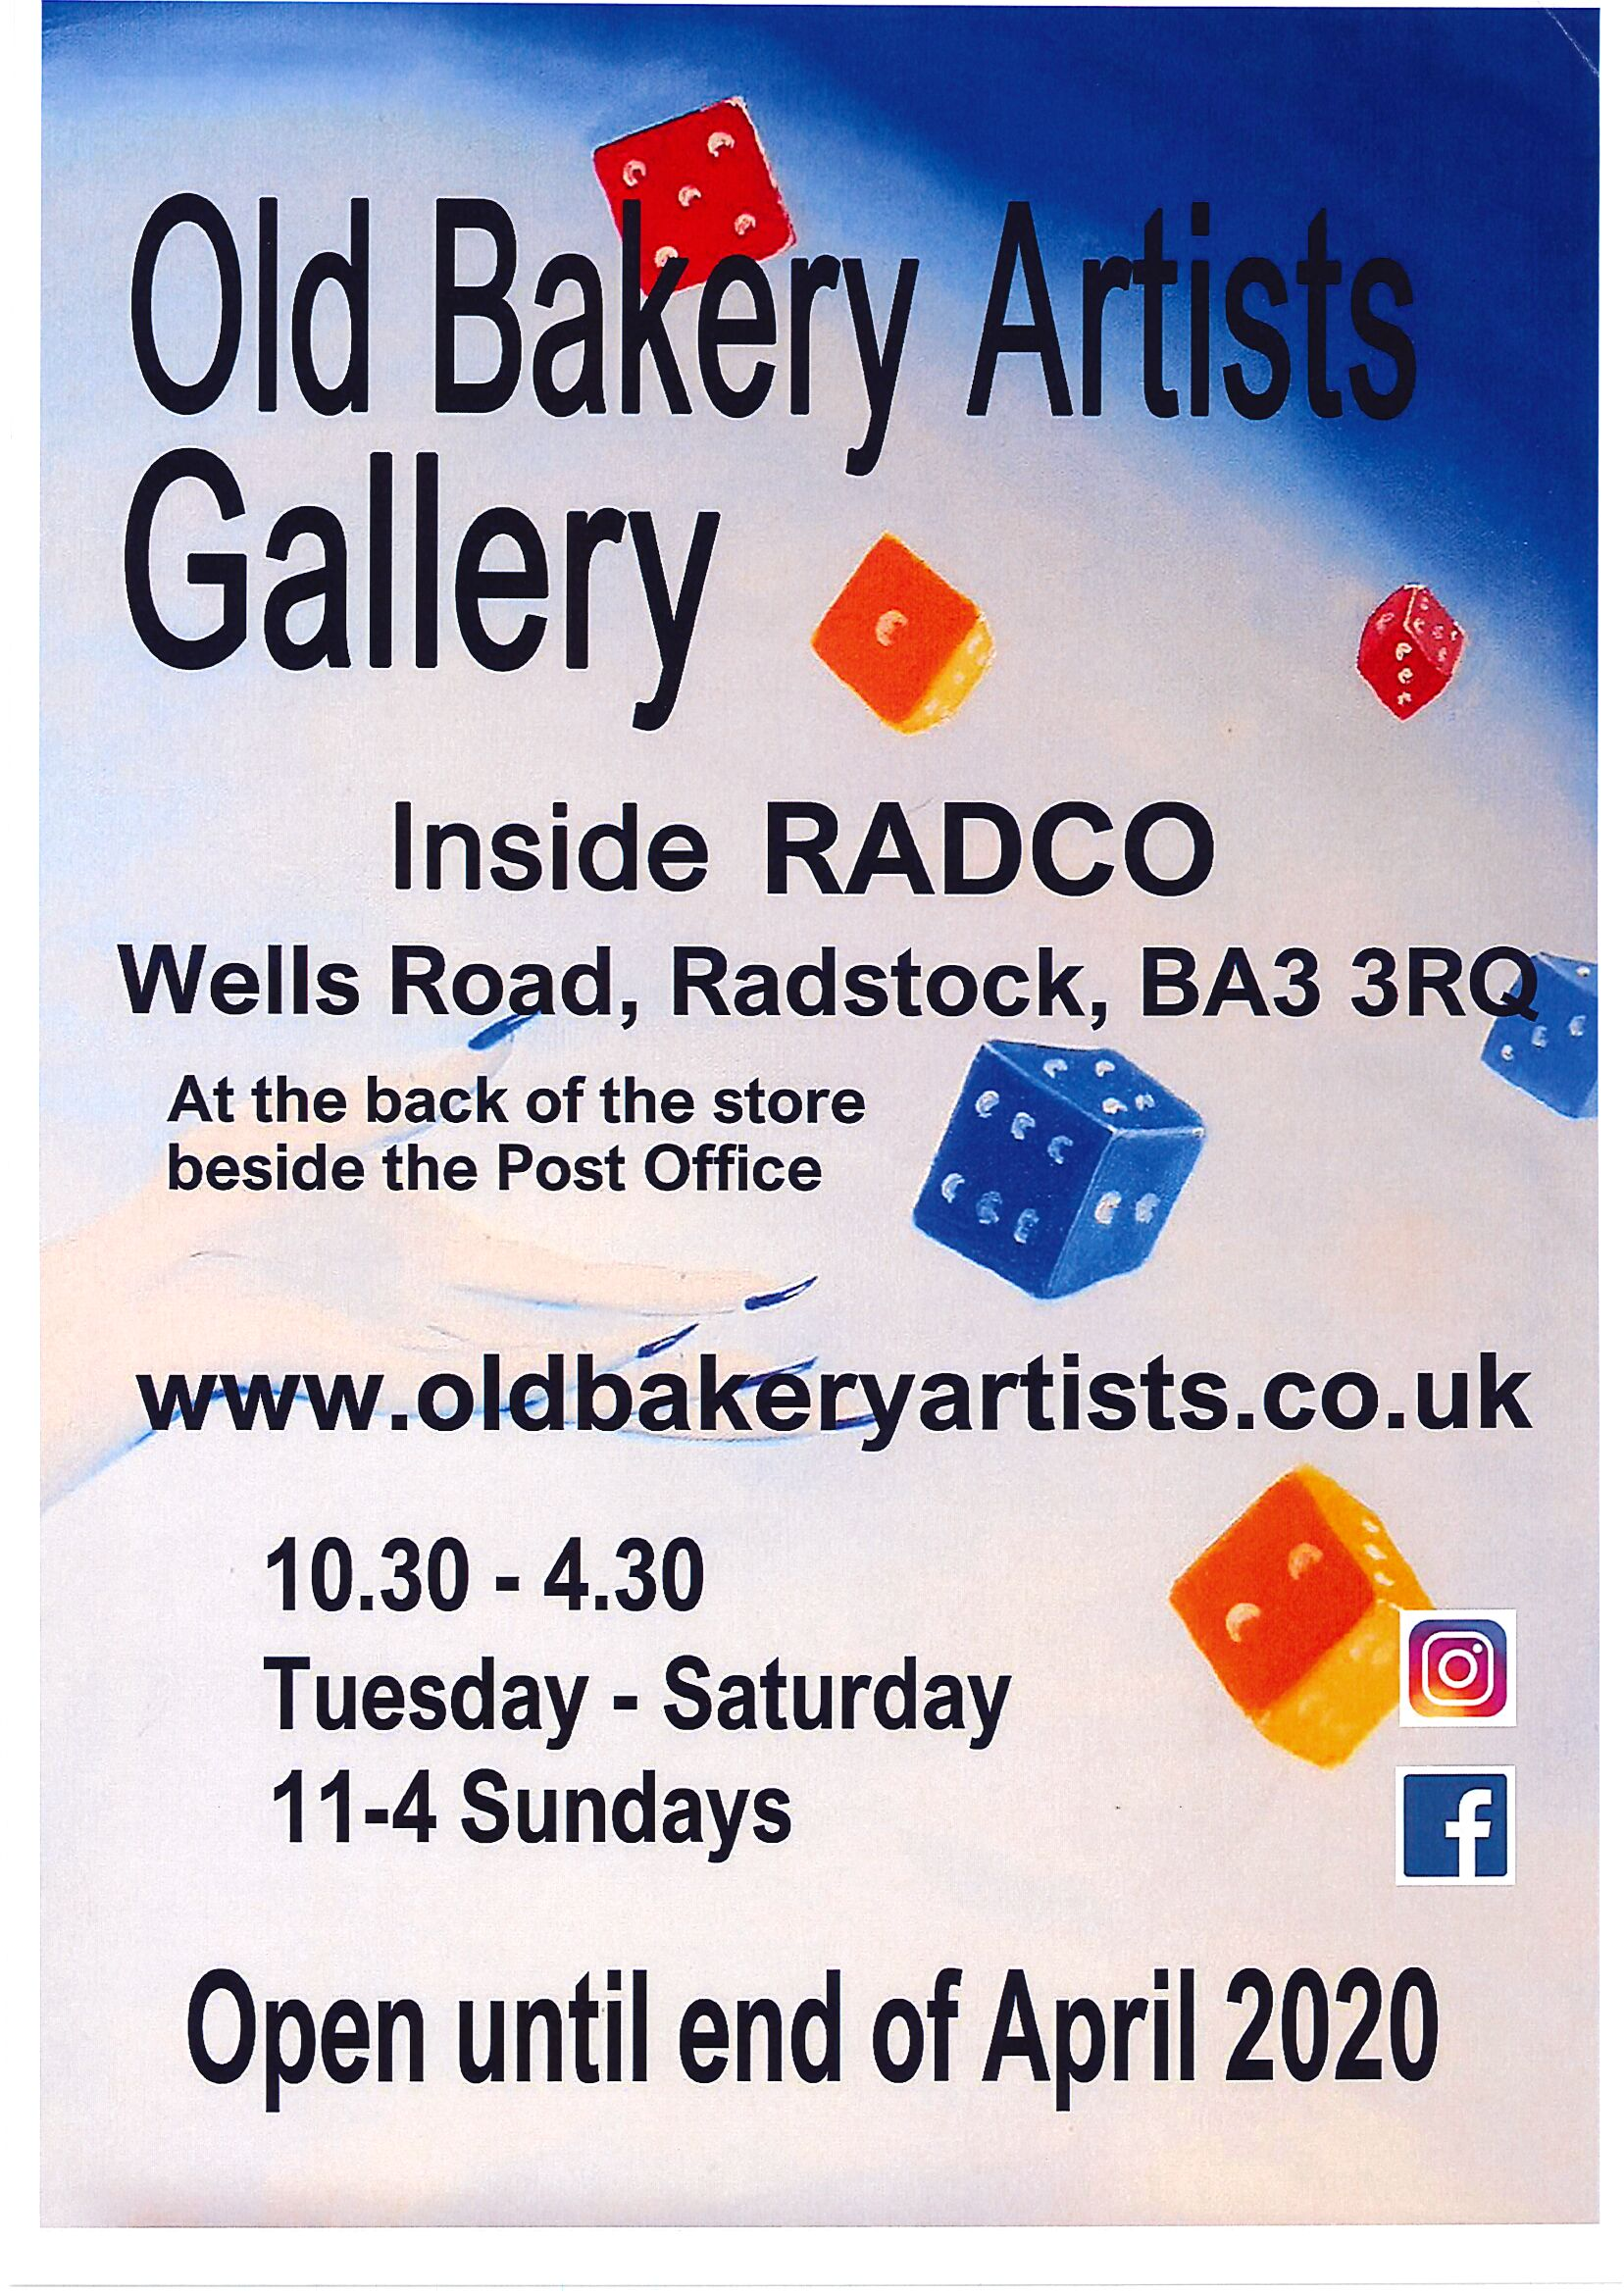 Old Bakery Artists Gallery